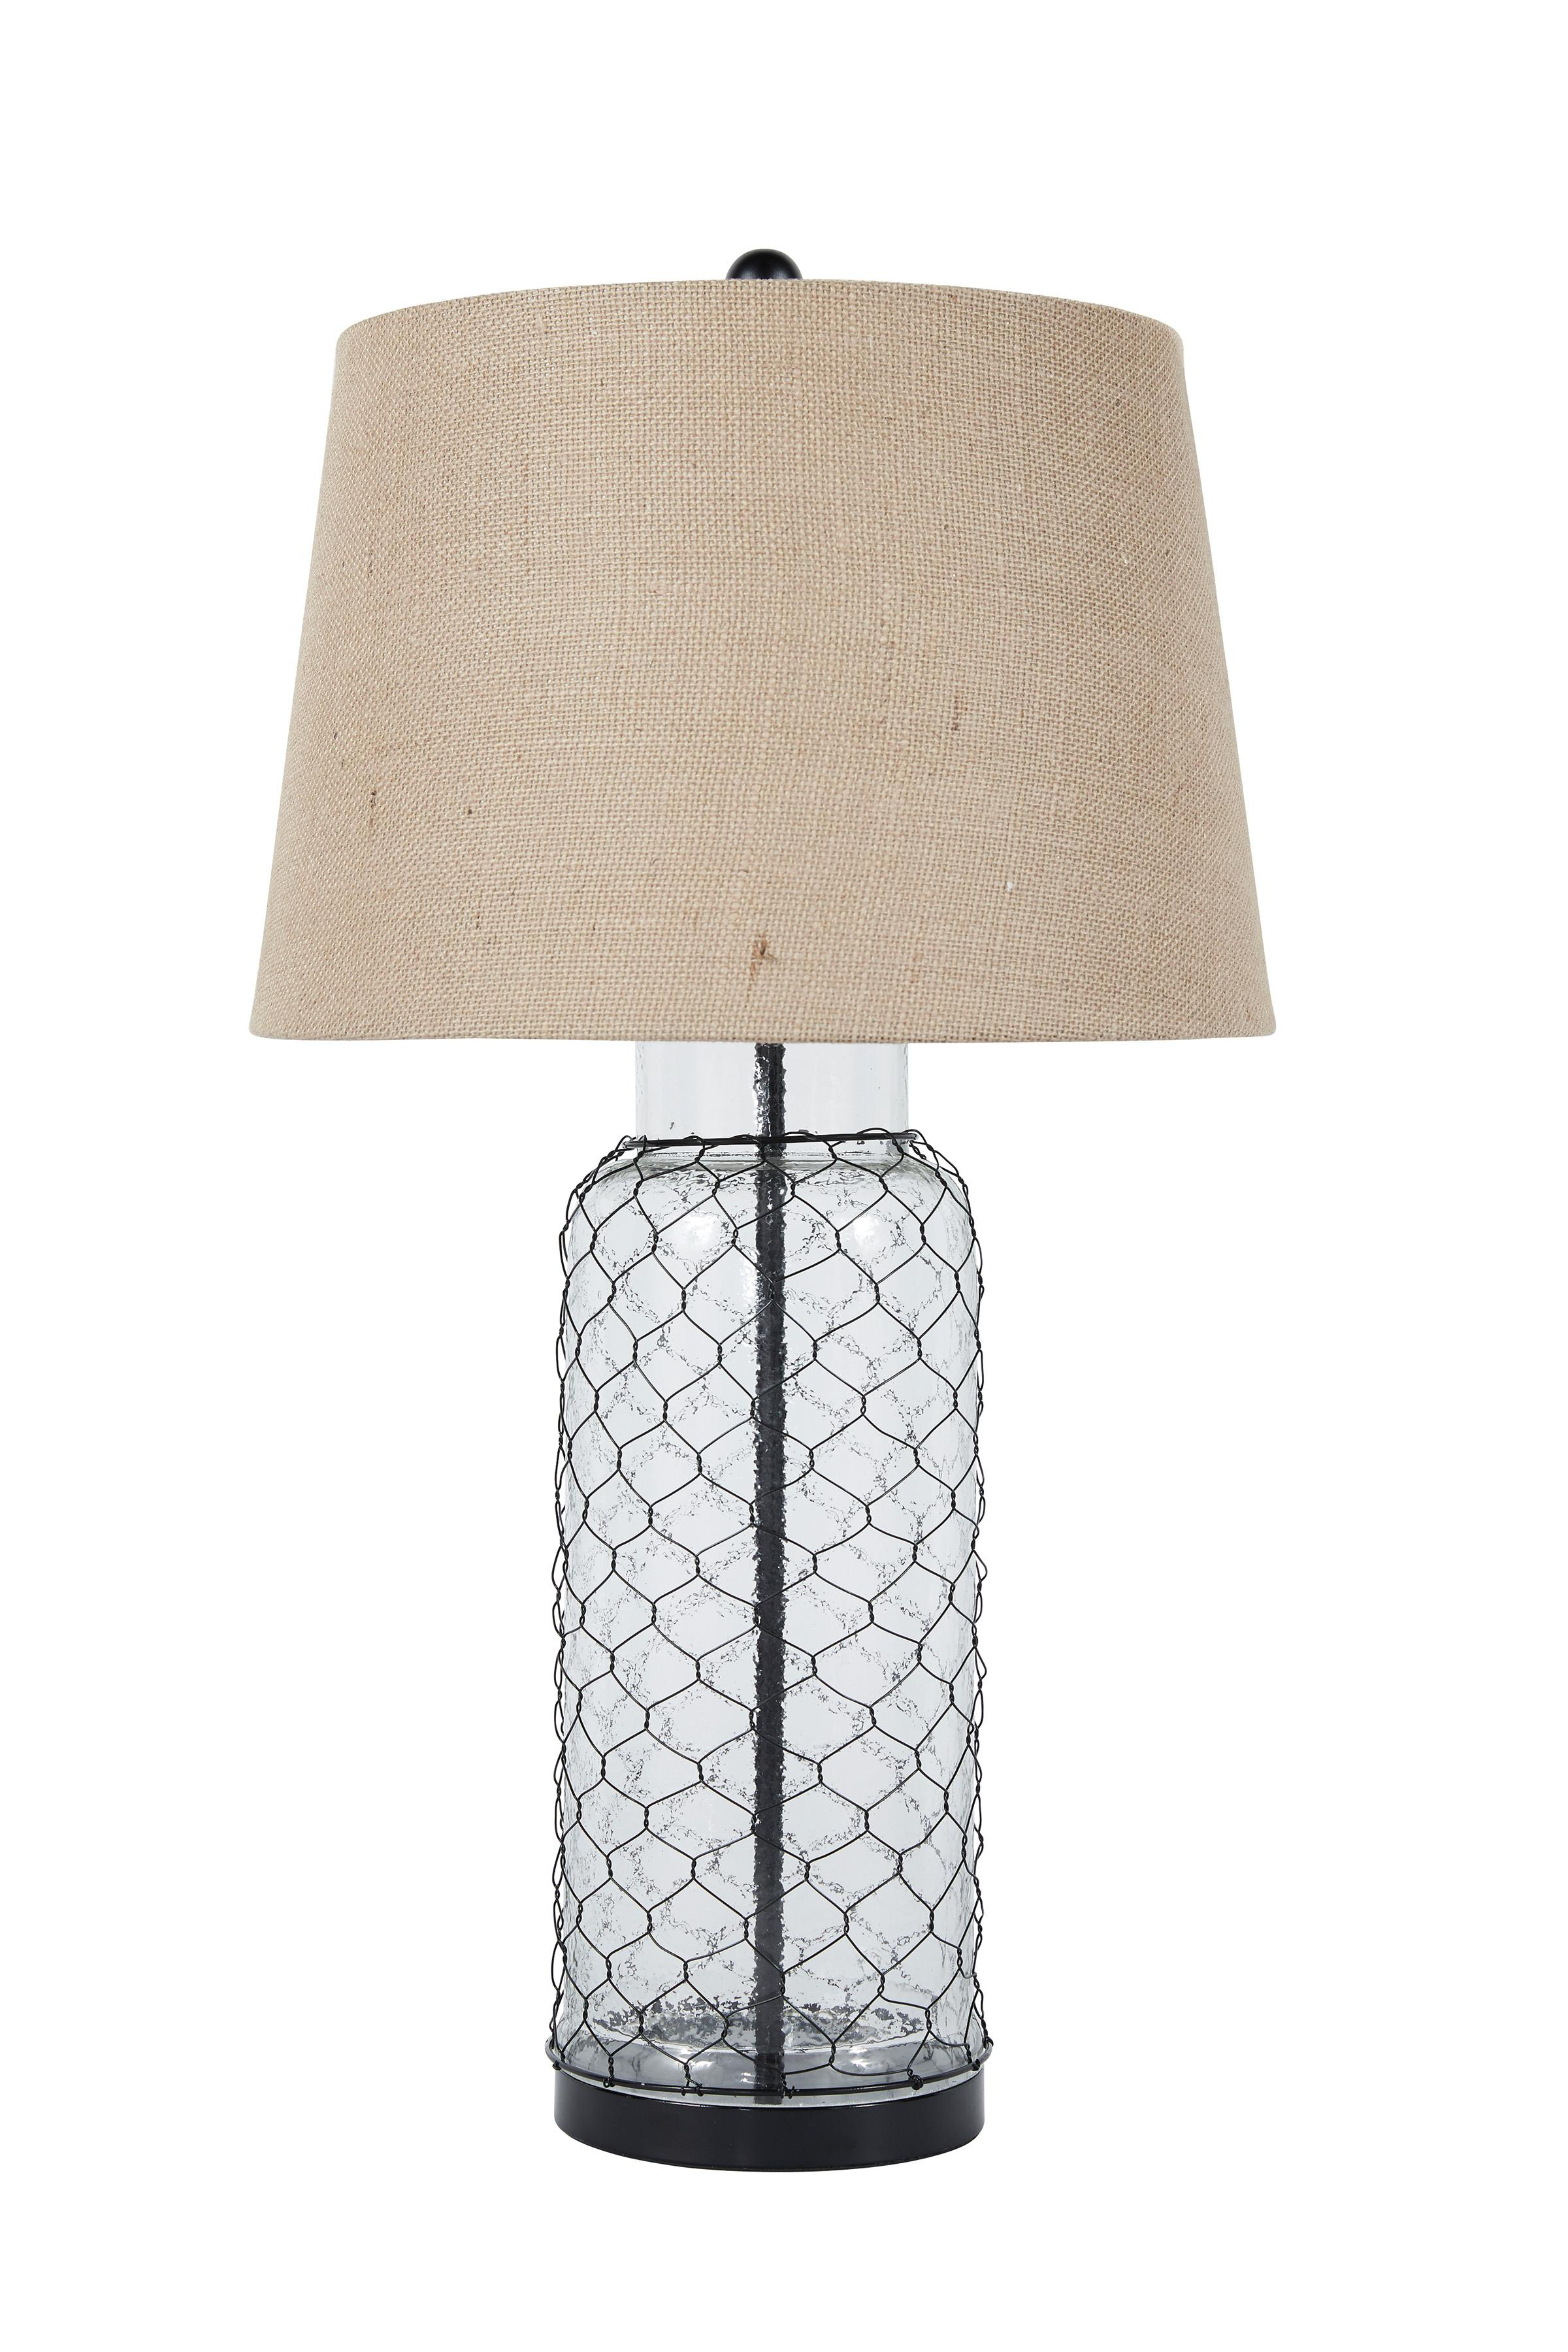 Lamps - Vintage Style Glass Table Lamp  by Signature at Walker's Furniture